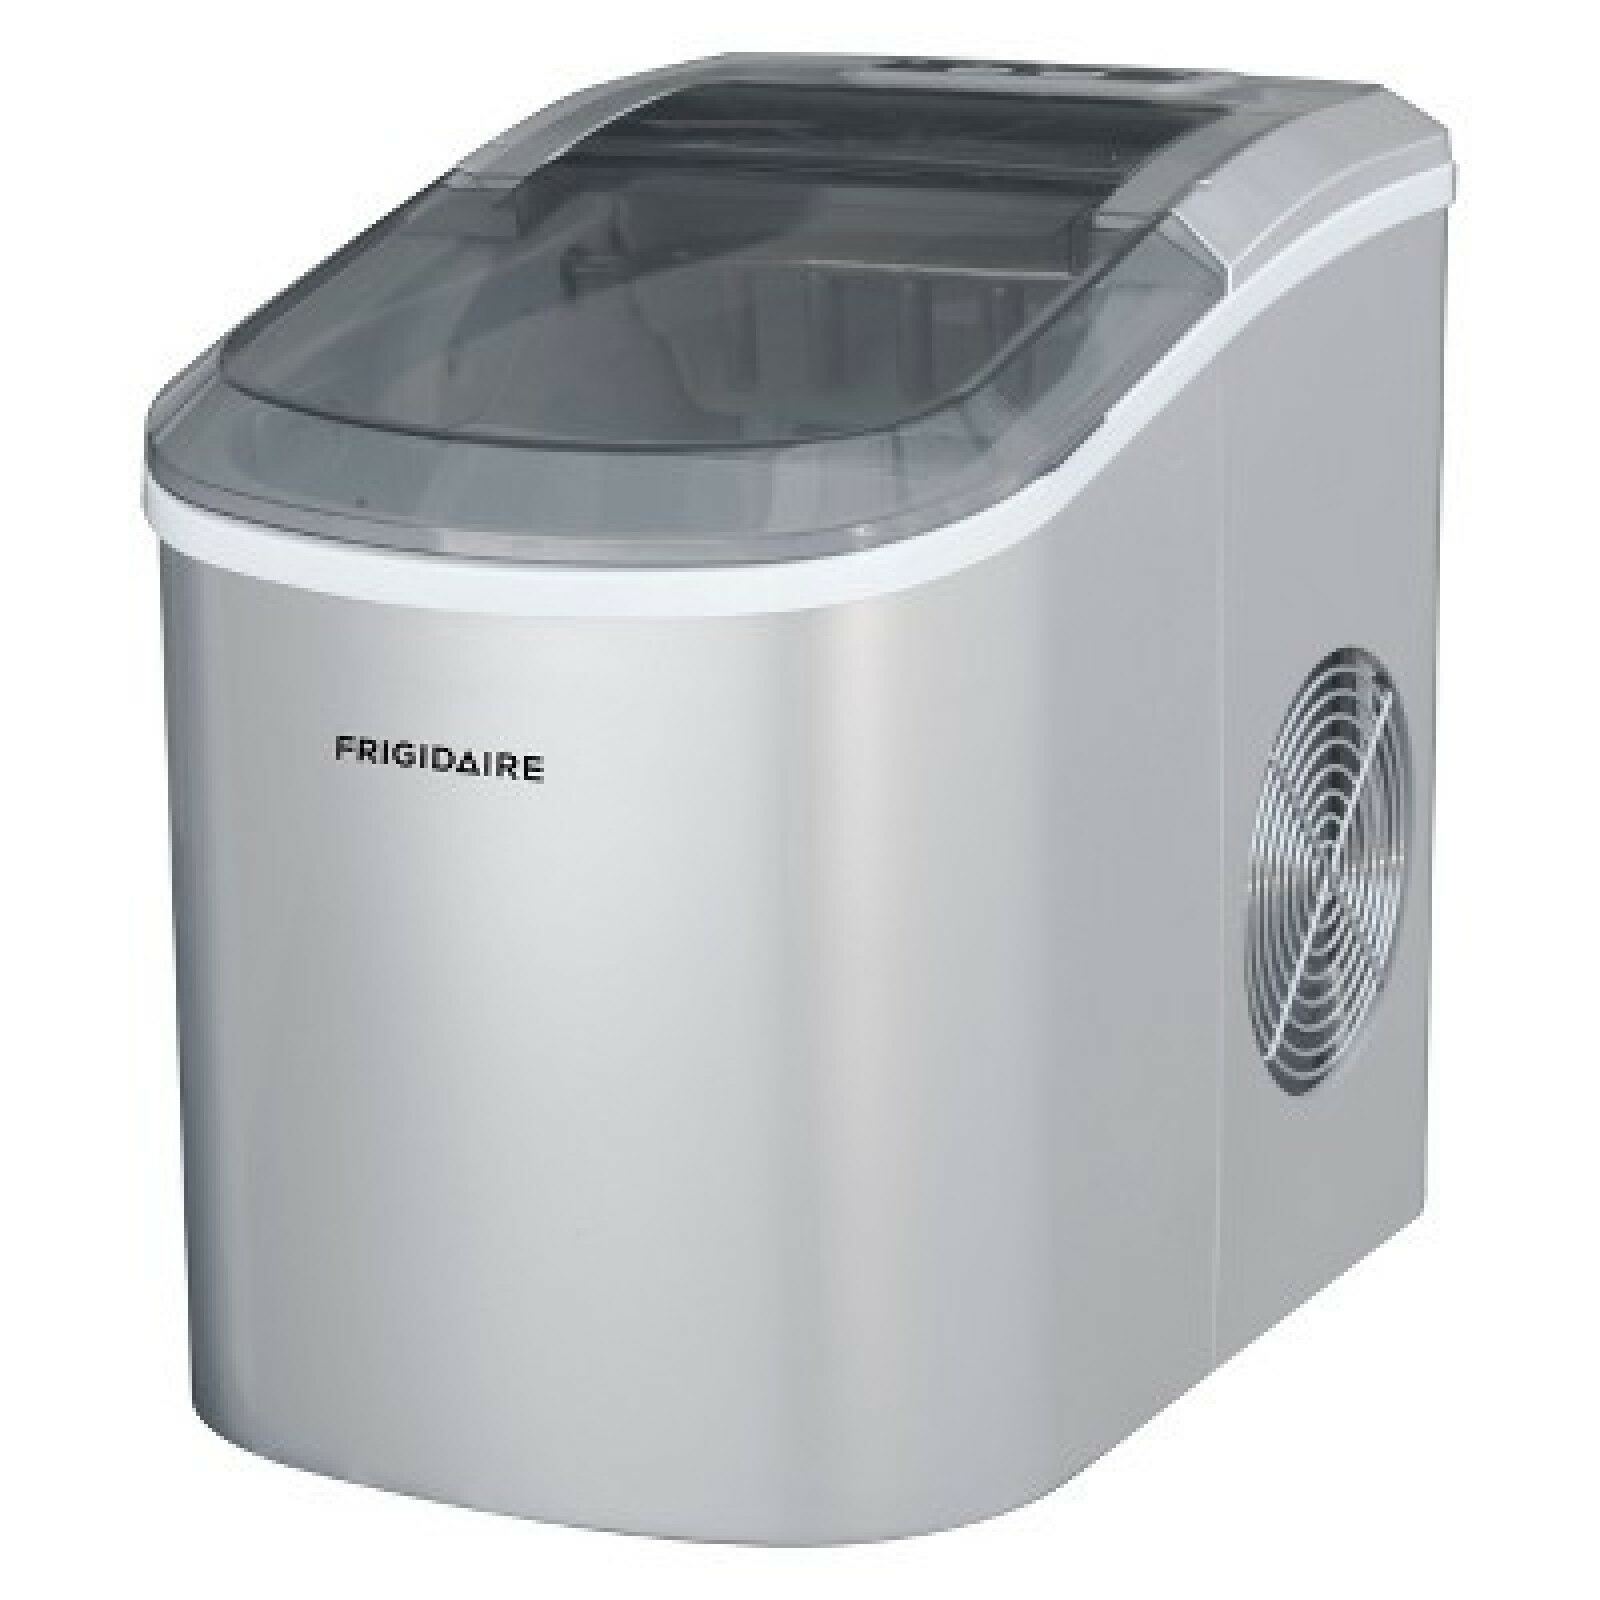 Frigidaire EFIC206-SILVER Ice Maker, 26 lb per Day, See Thro